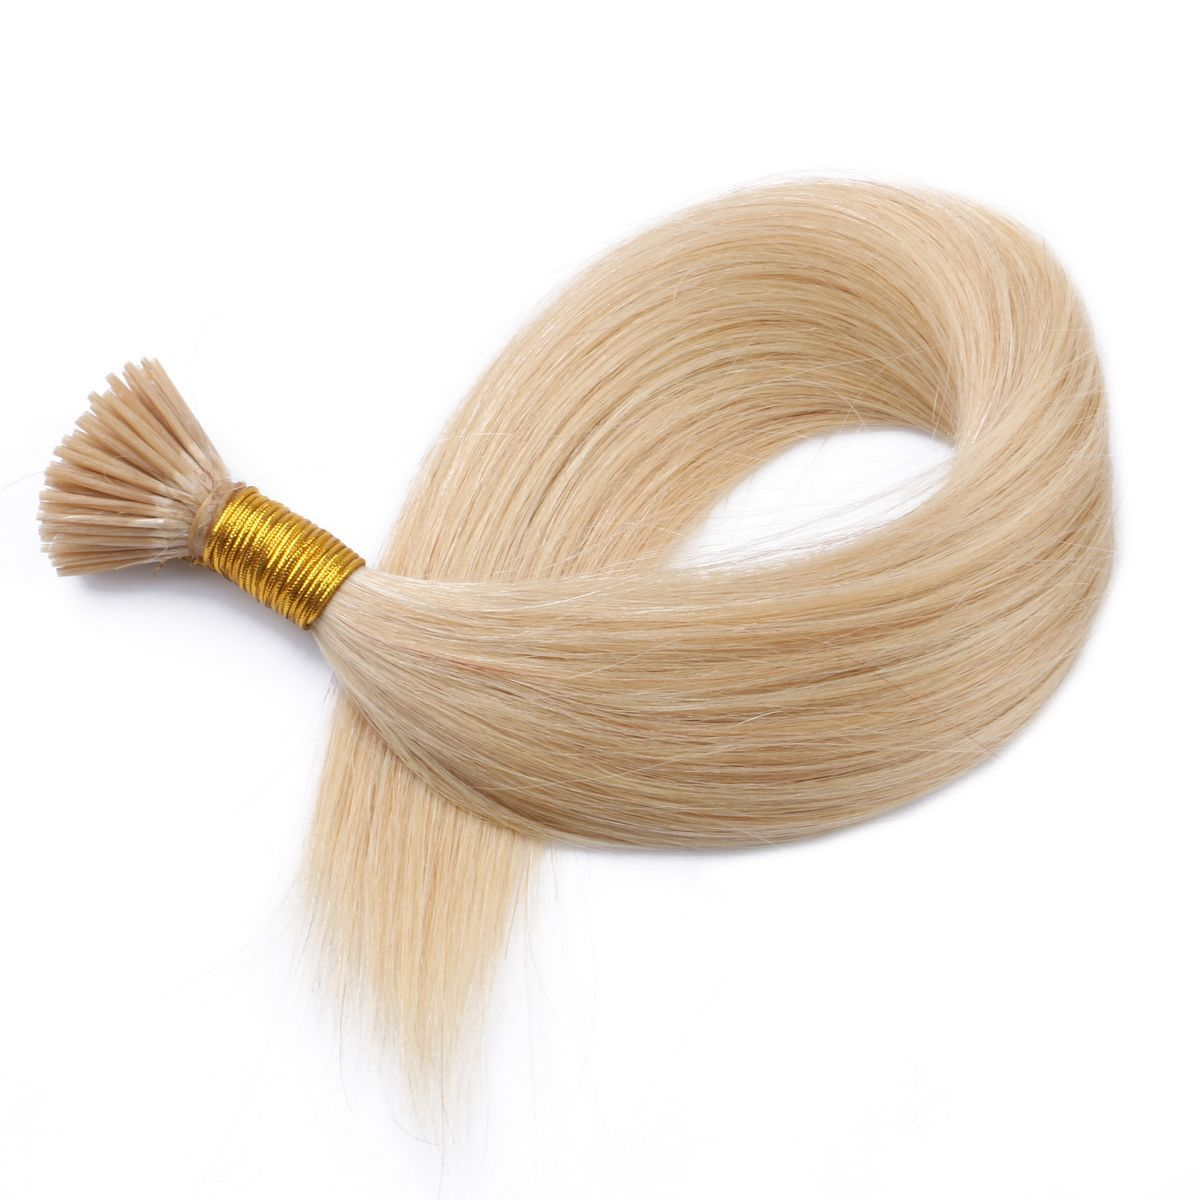 This Is Our Stick Tip Hair Extensions 05gramstrand 08gram